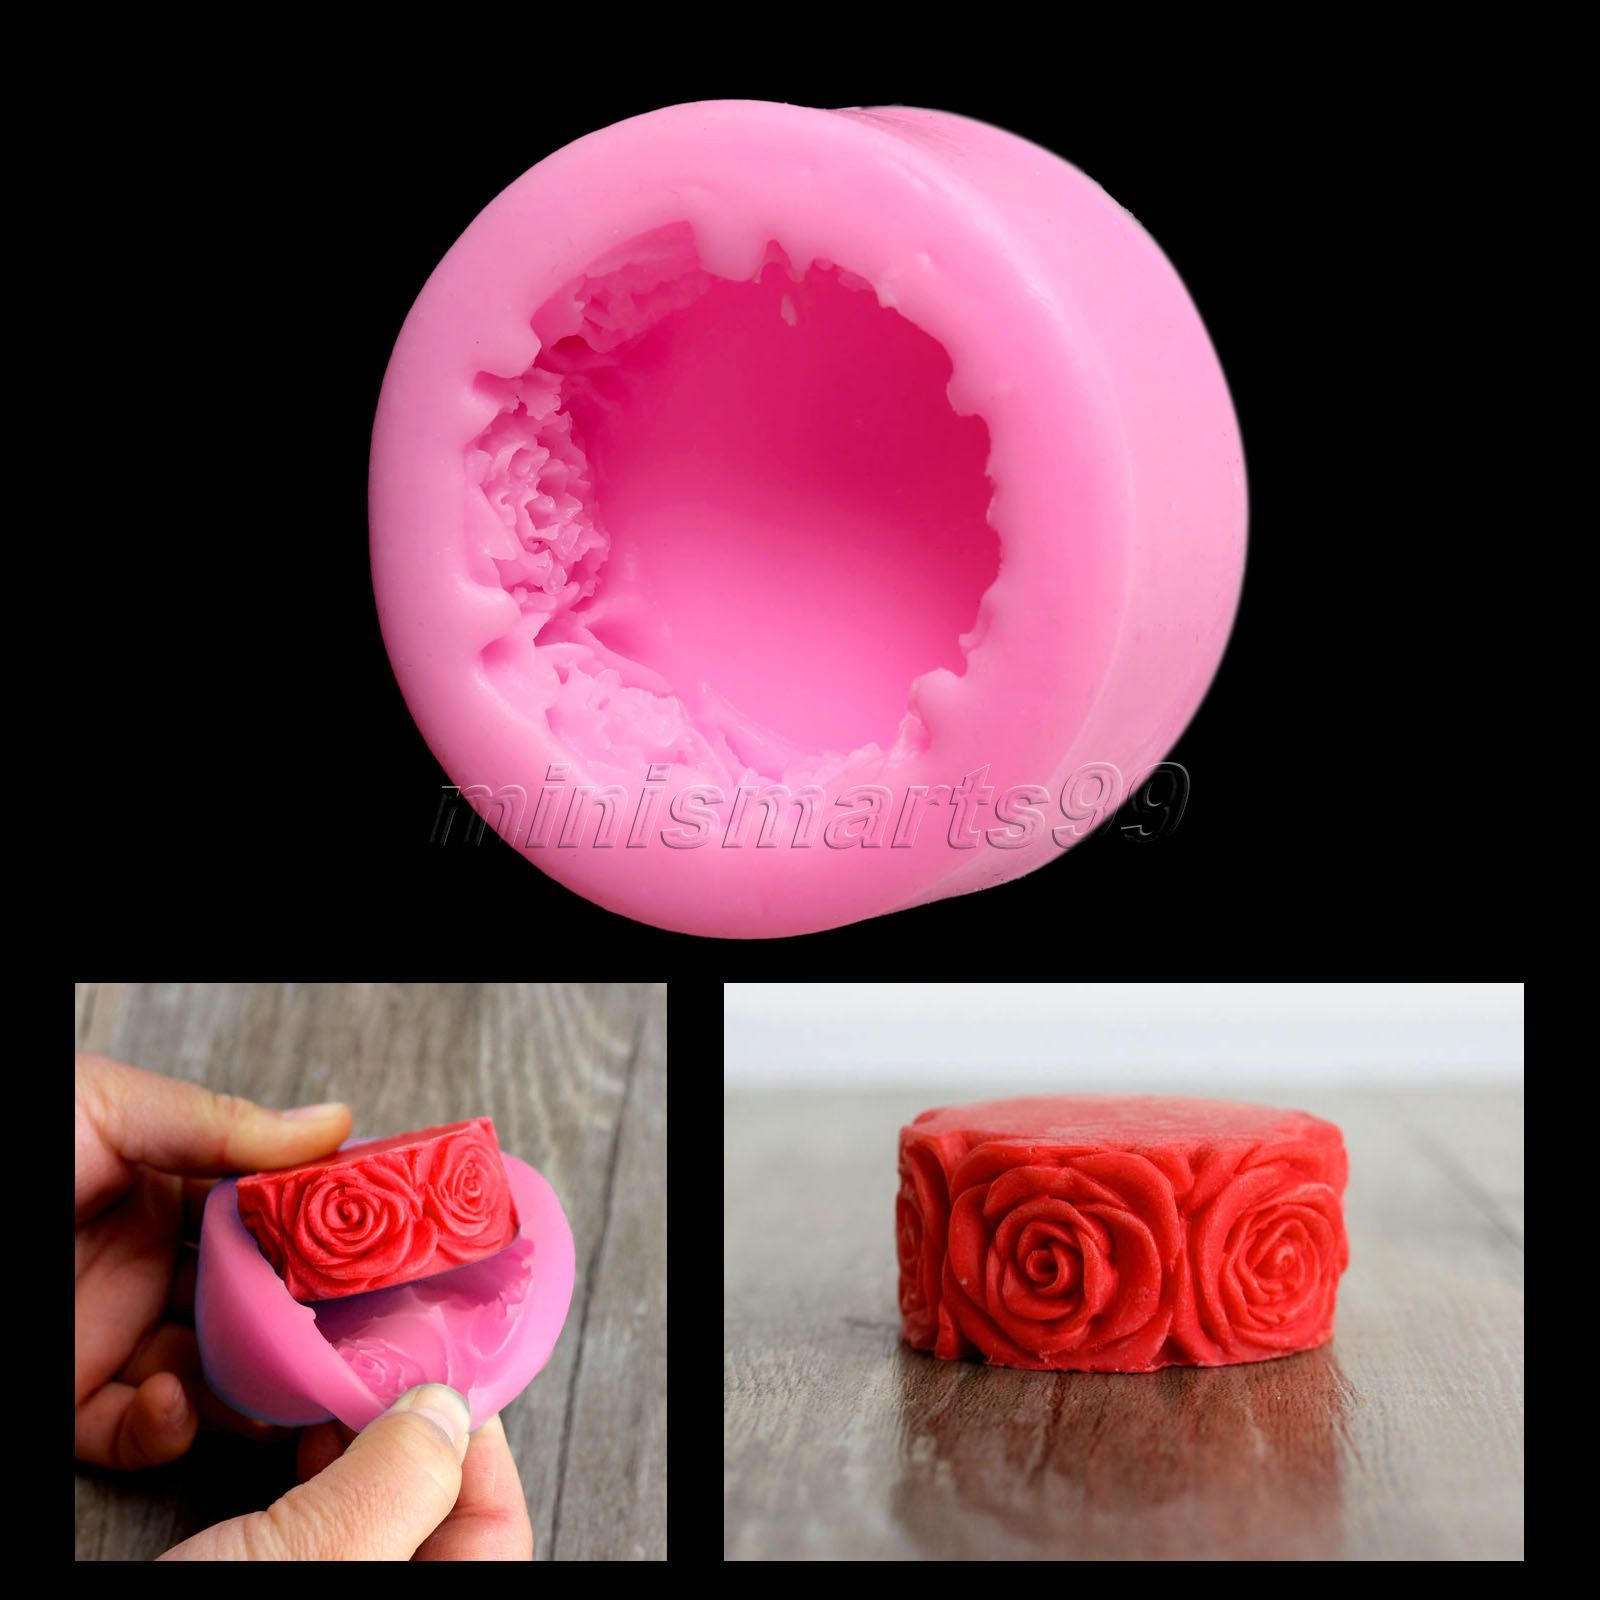 Nicole Rose Flowers Round Silicone Mold Forms for Soap DIY Crafts Mould Candle Molds Stampi In Silicone Cake Tools